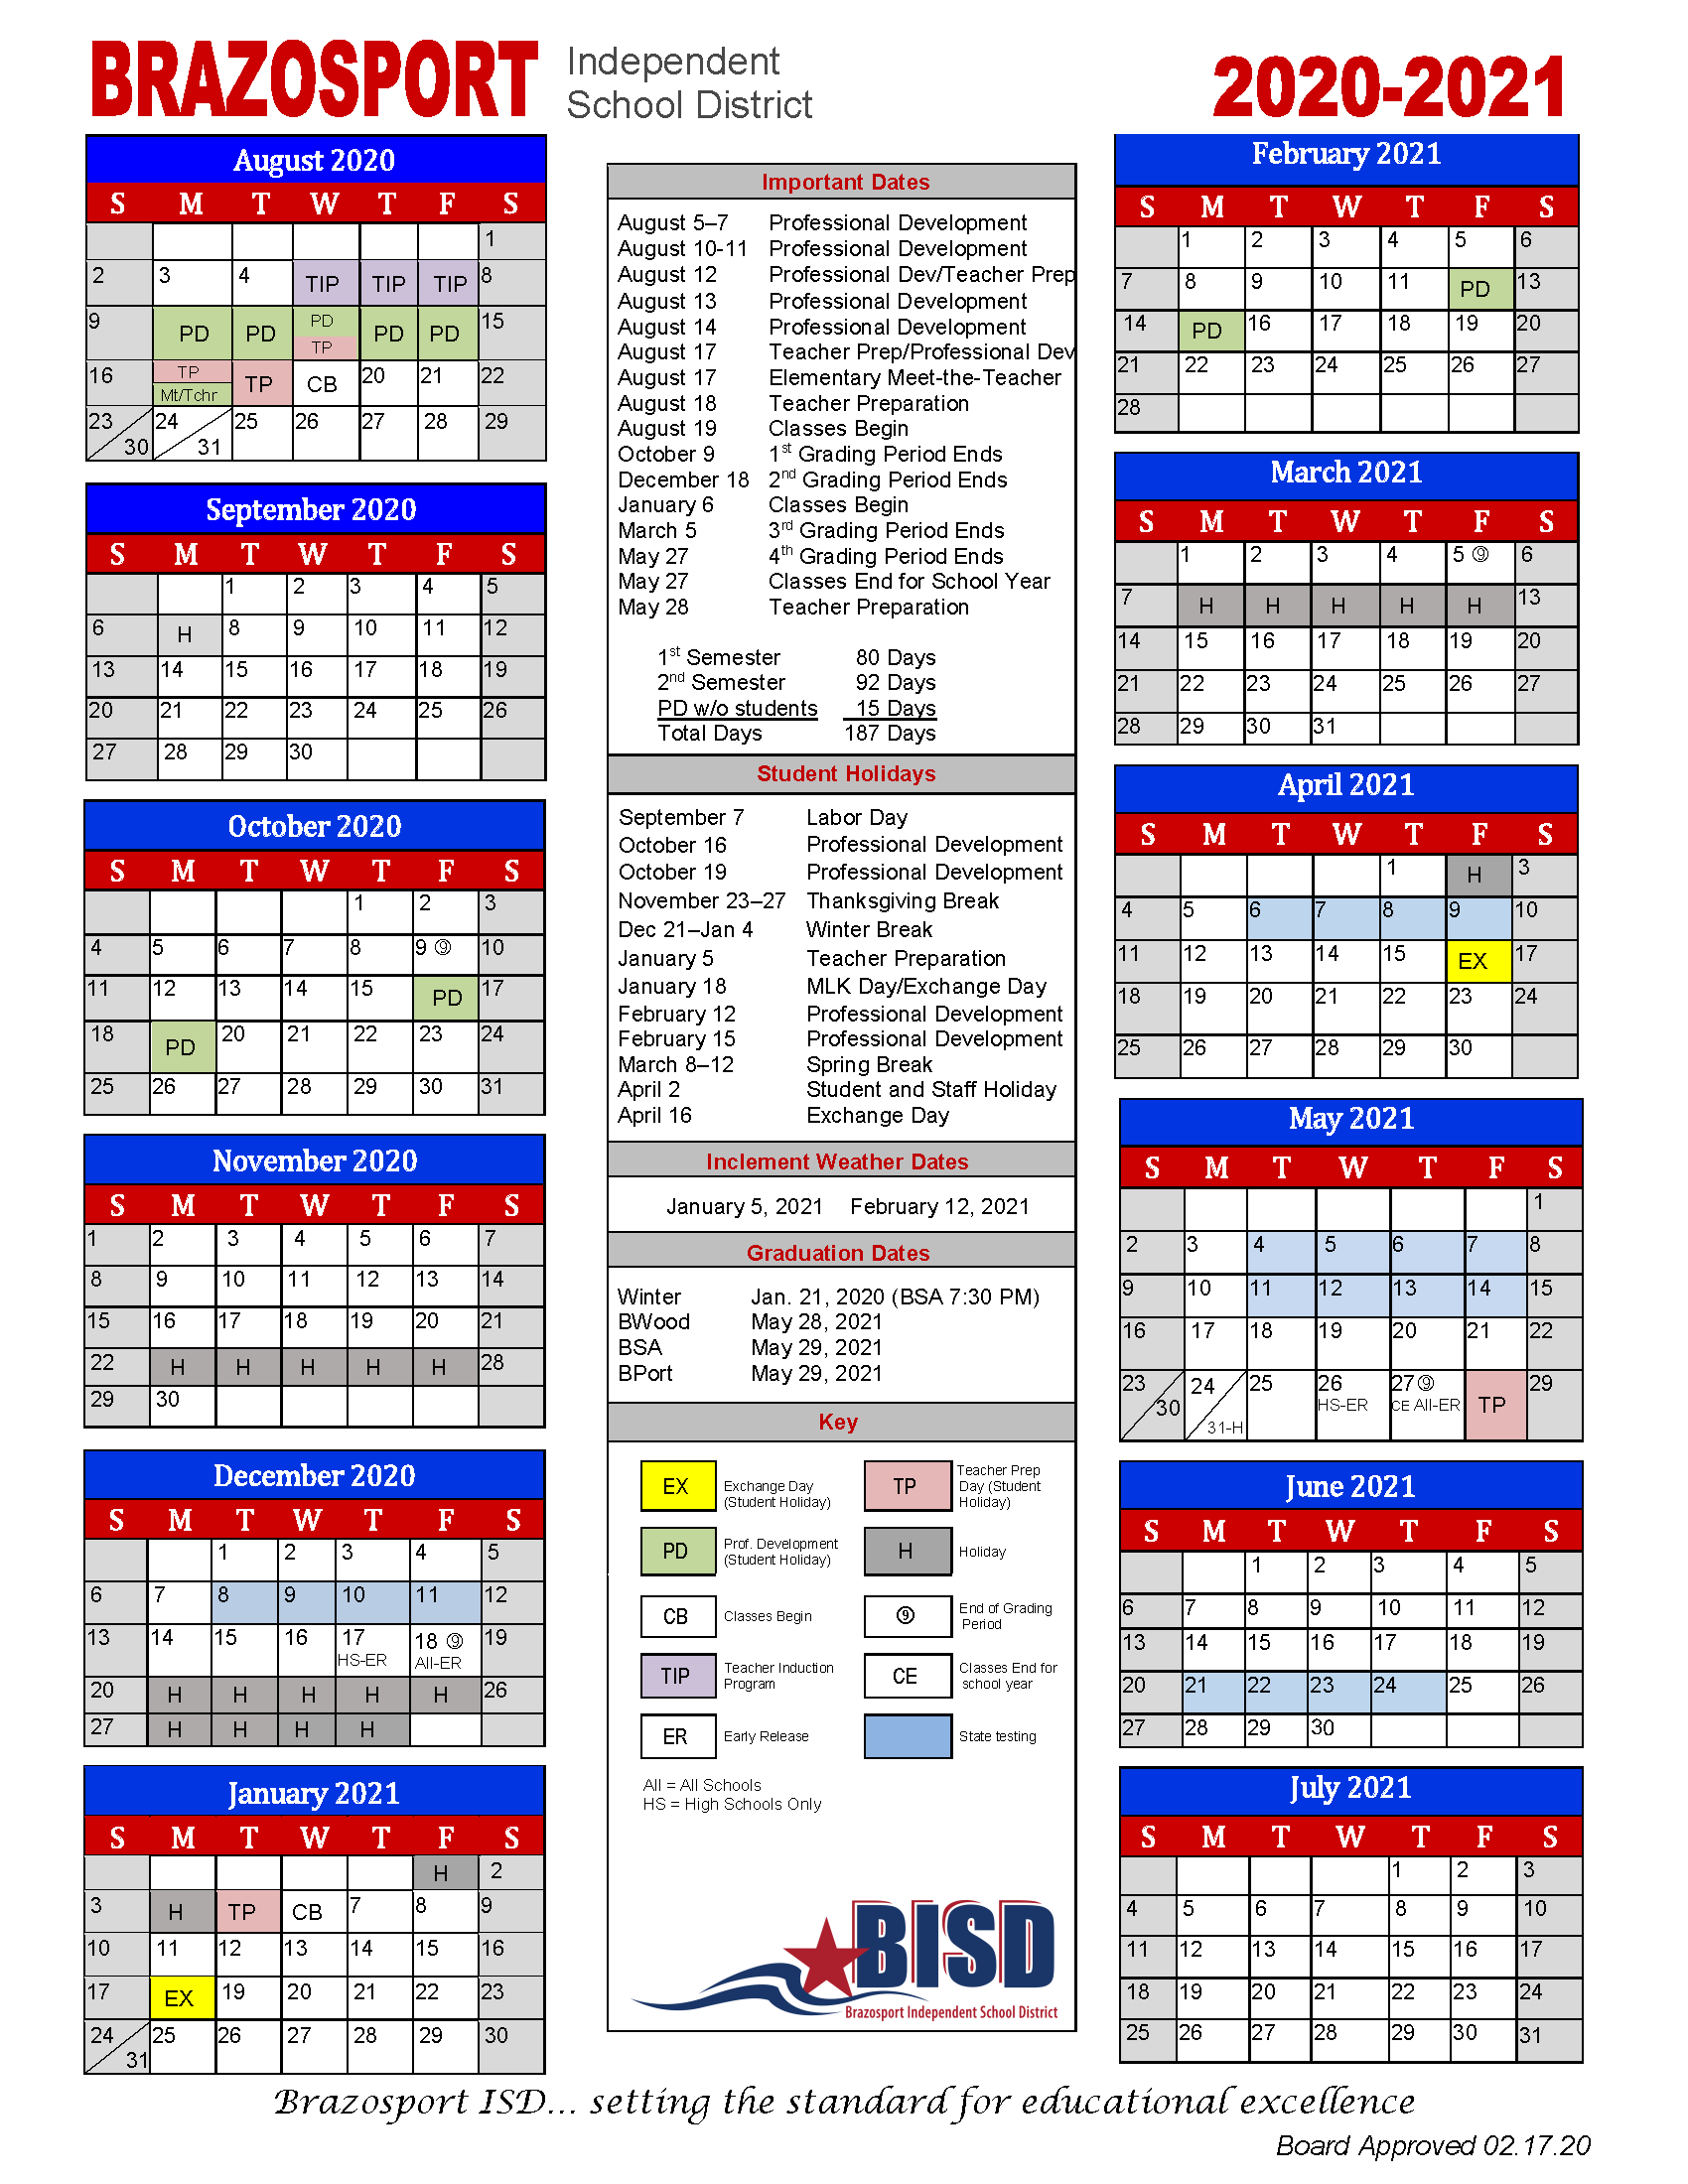 Board Approves 2020 2021 School Calendar - Brazosport Intended For Brownsville Independent School District Calendar